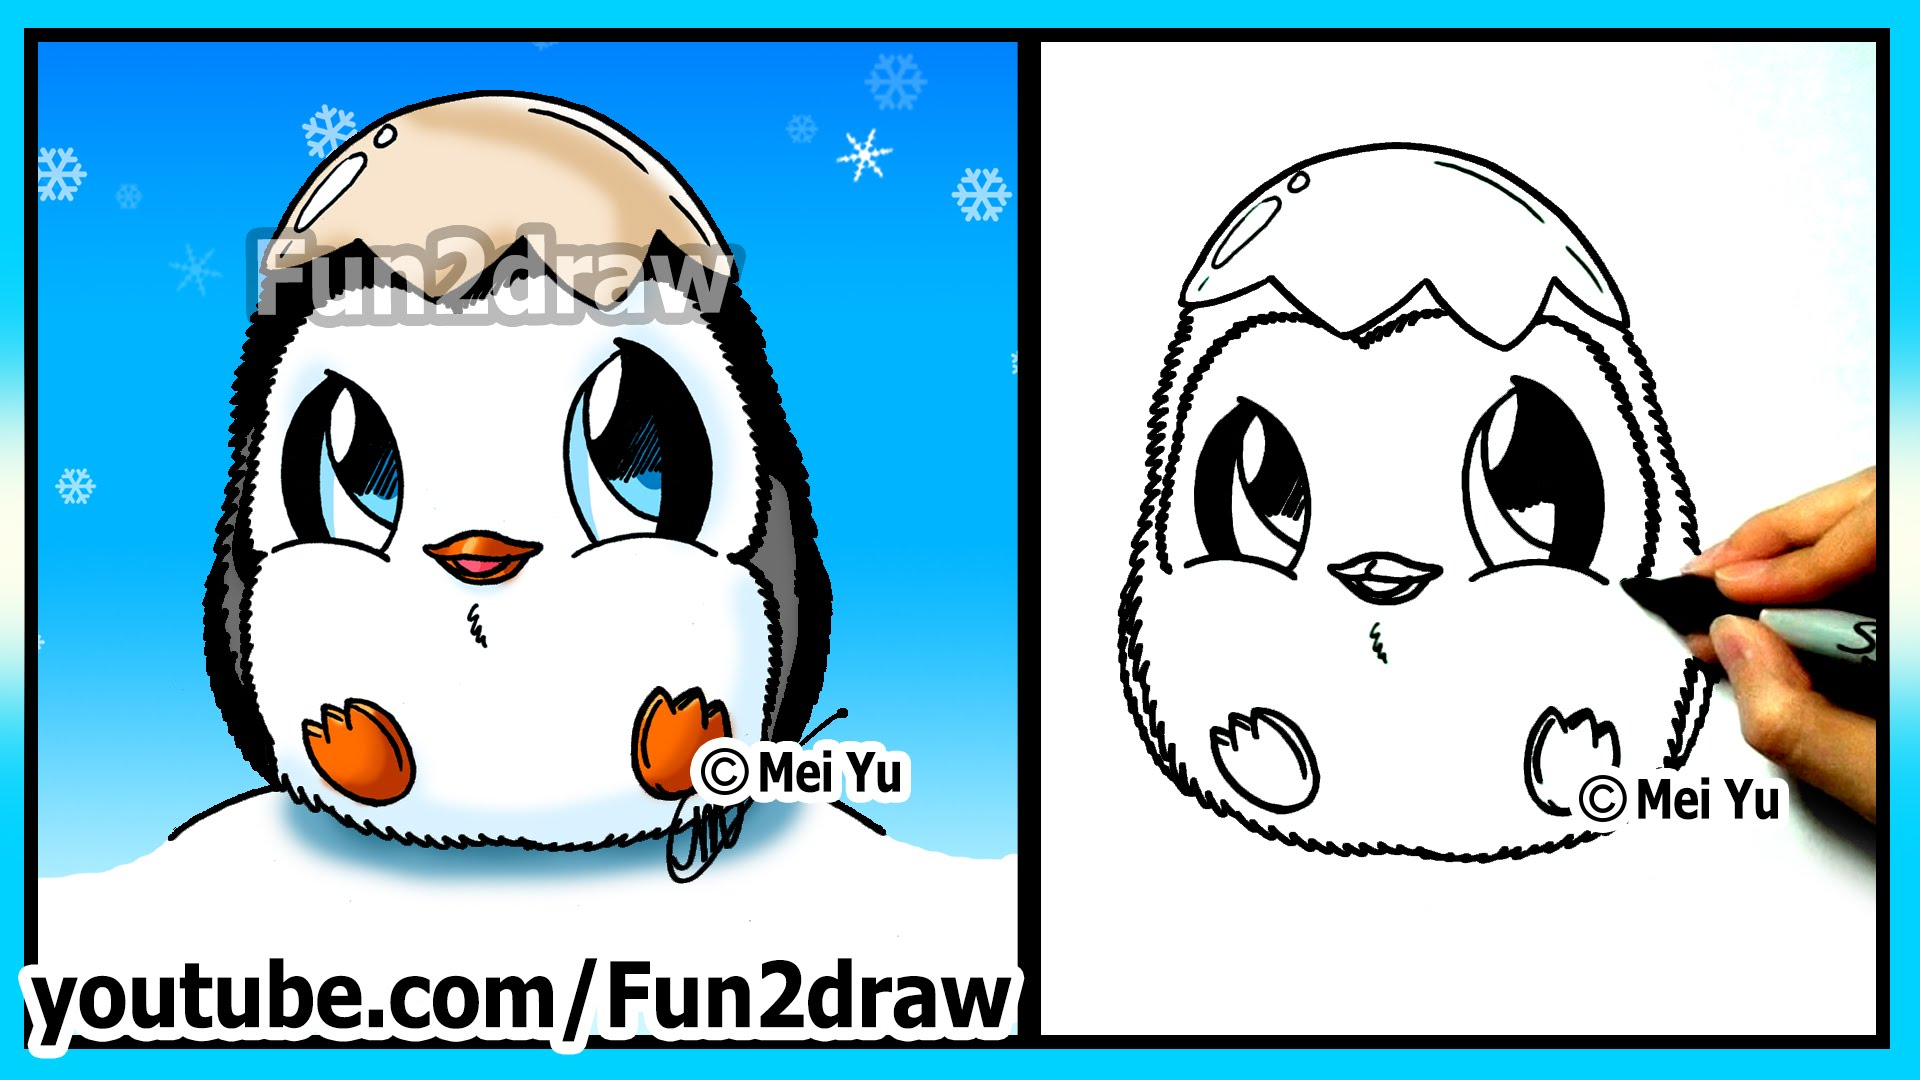 Drawn polar  bear fun2draw Penguin Baby CUTE for Penguin